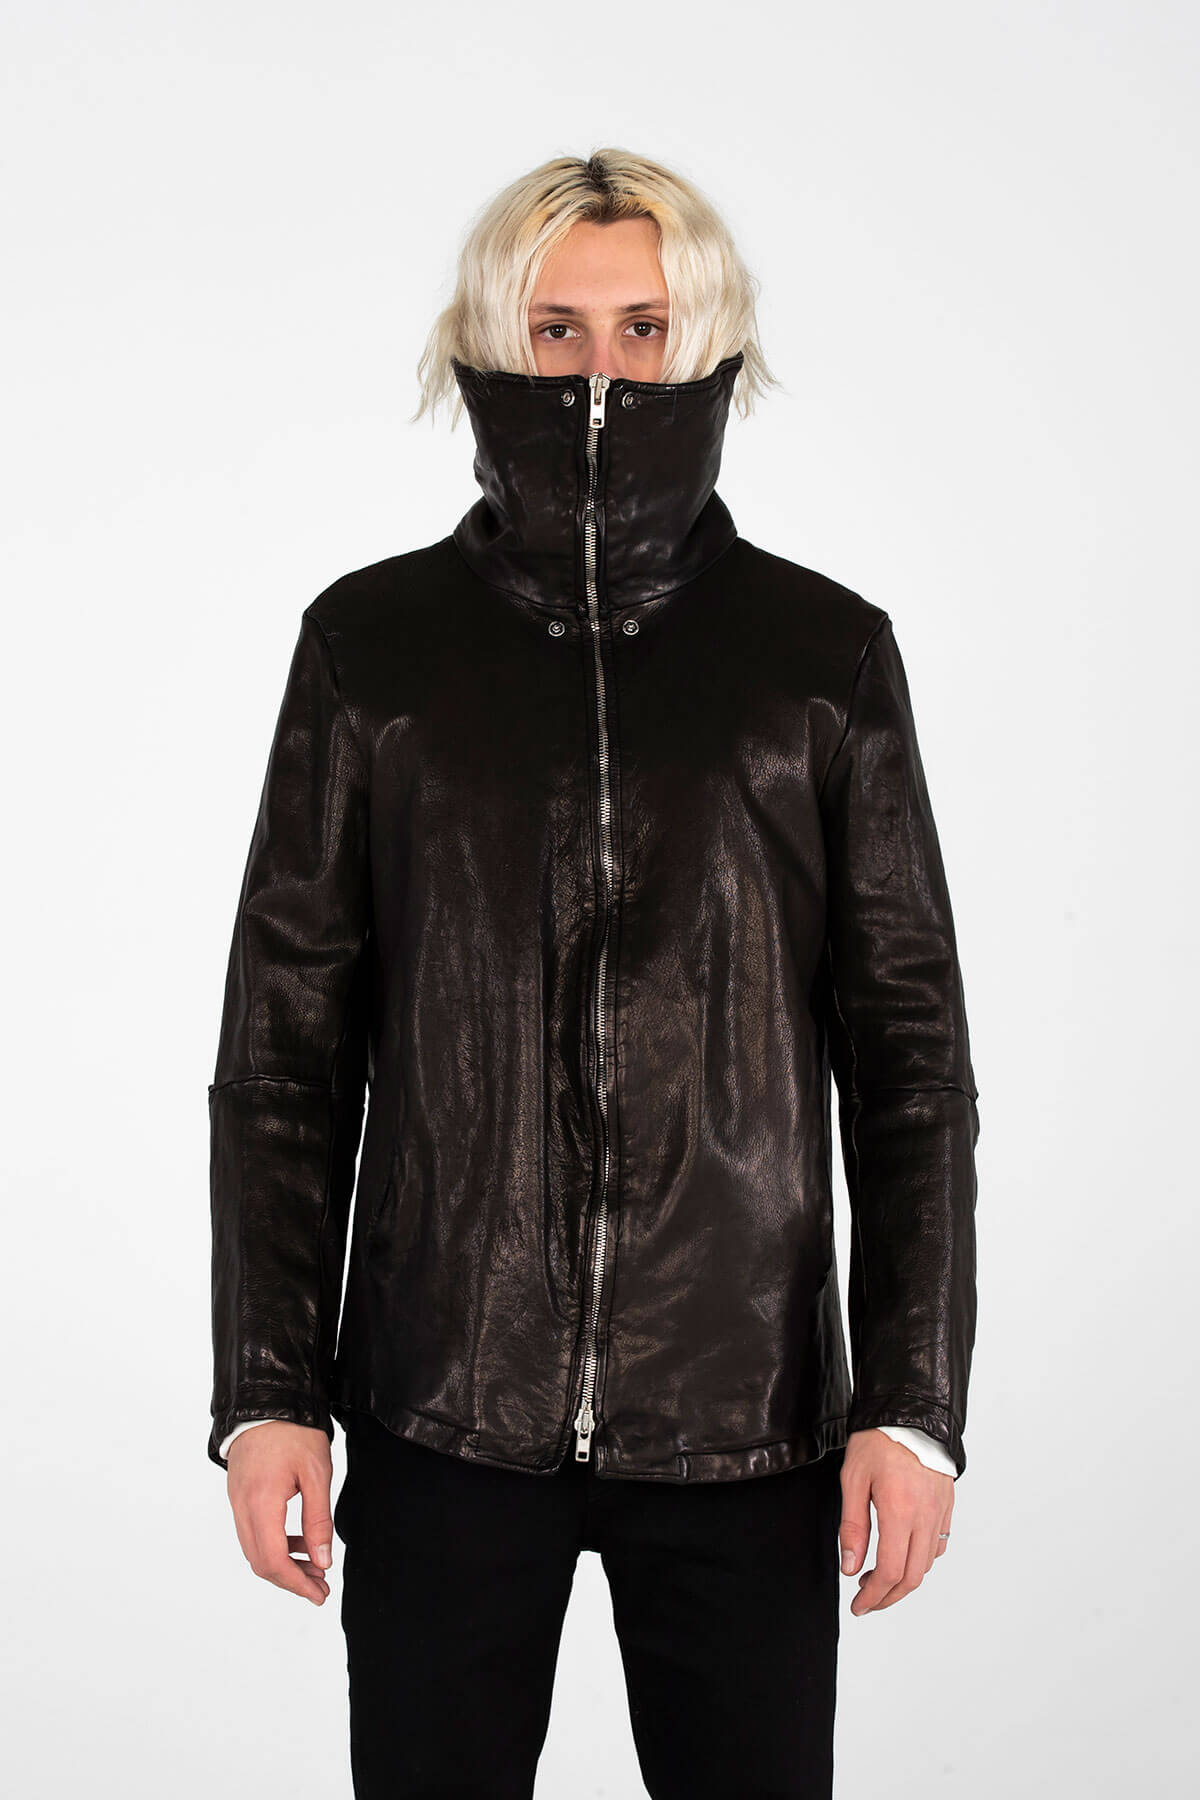 CLASSIC LEATHER JACKET - HAND CRAFTED - ARCHIVE JACKET - MJB